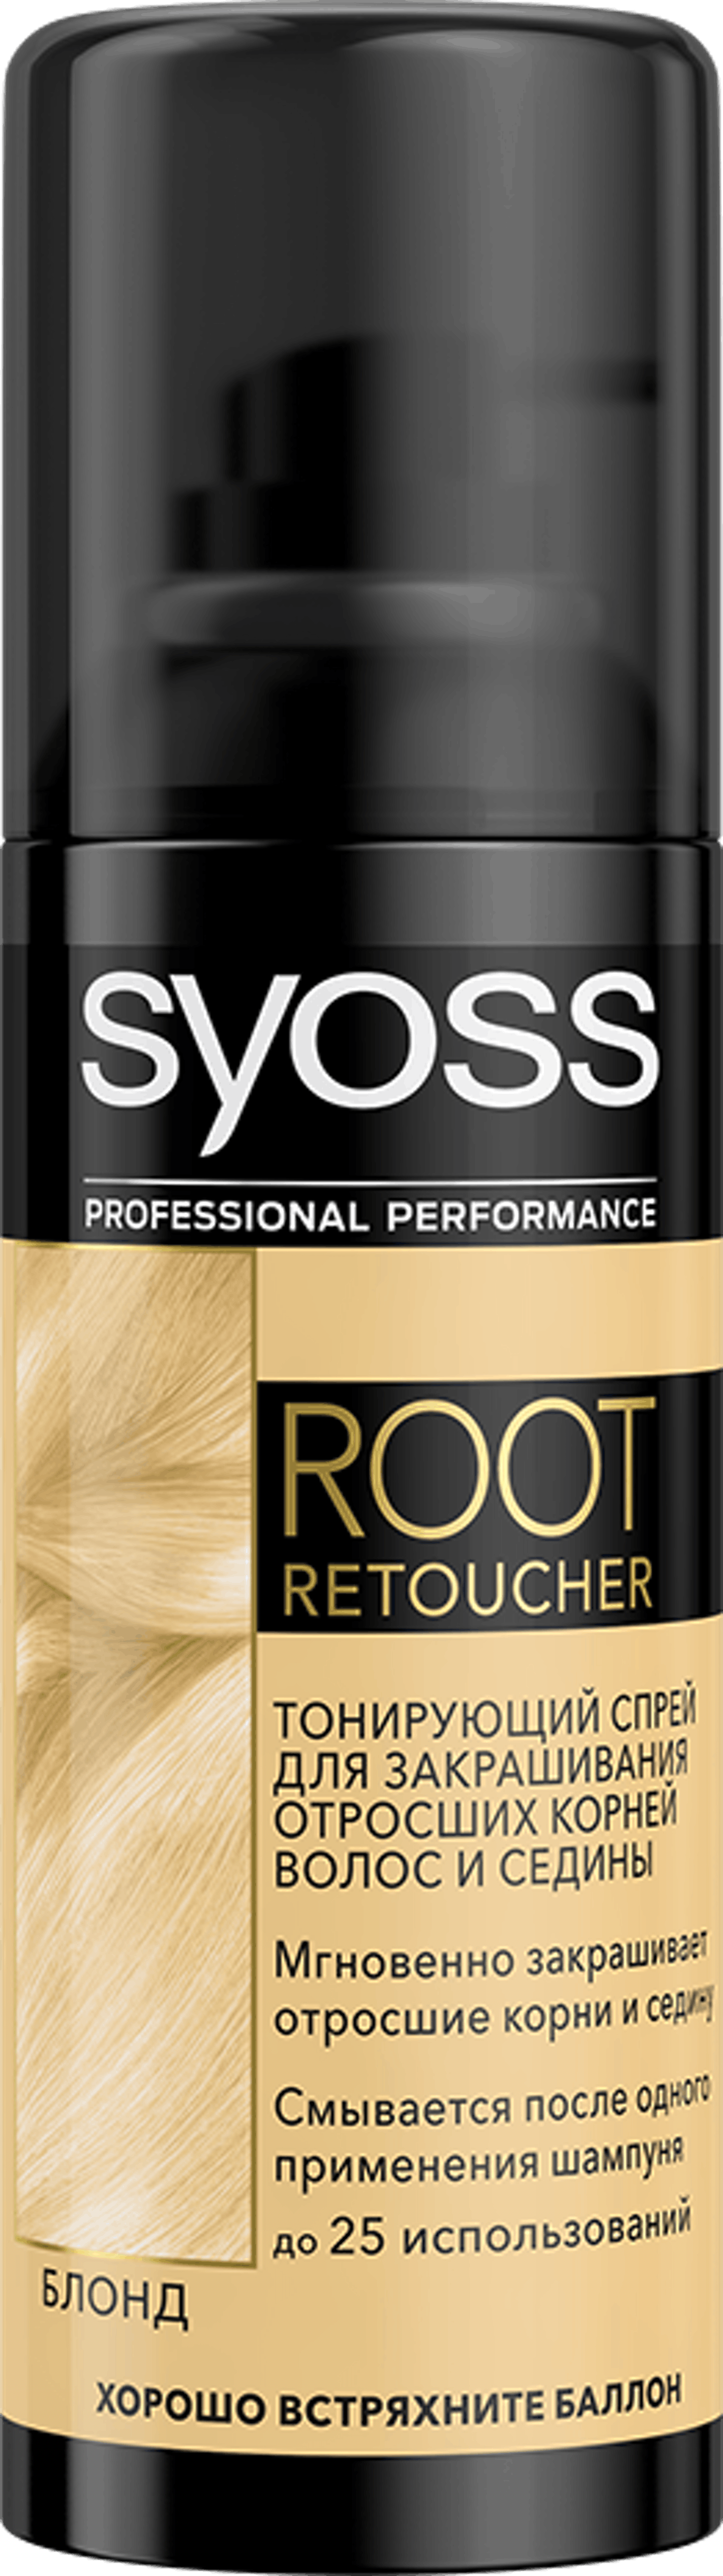 Syoss Root Retoucher Блонд